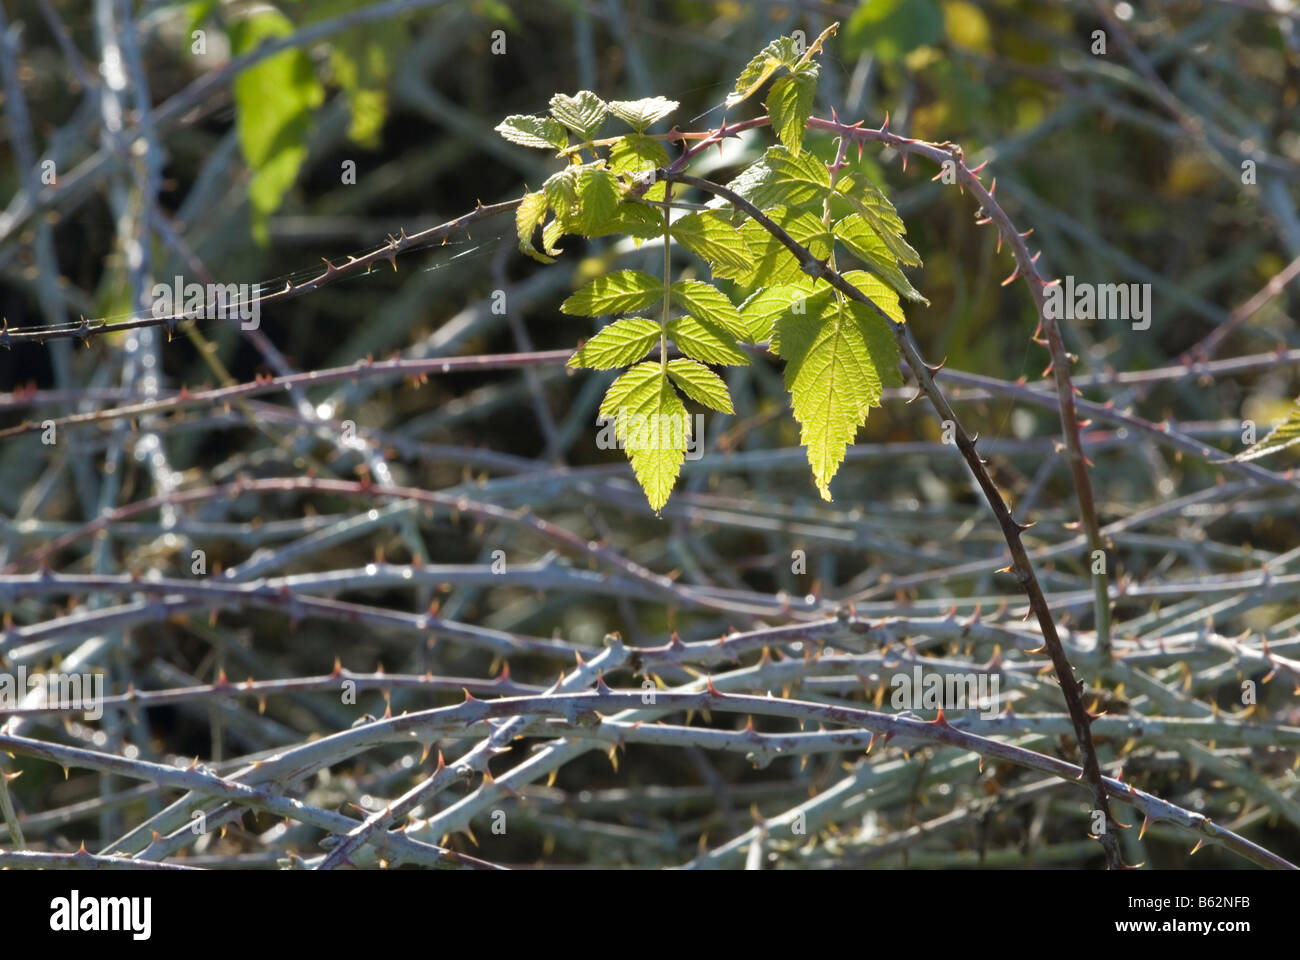 Rubus cockburnianus, last autumn leaves and white stems - Stock Image